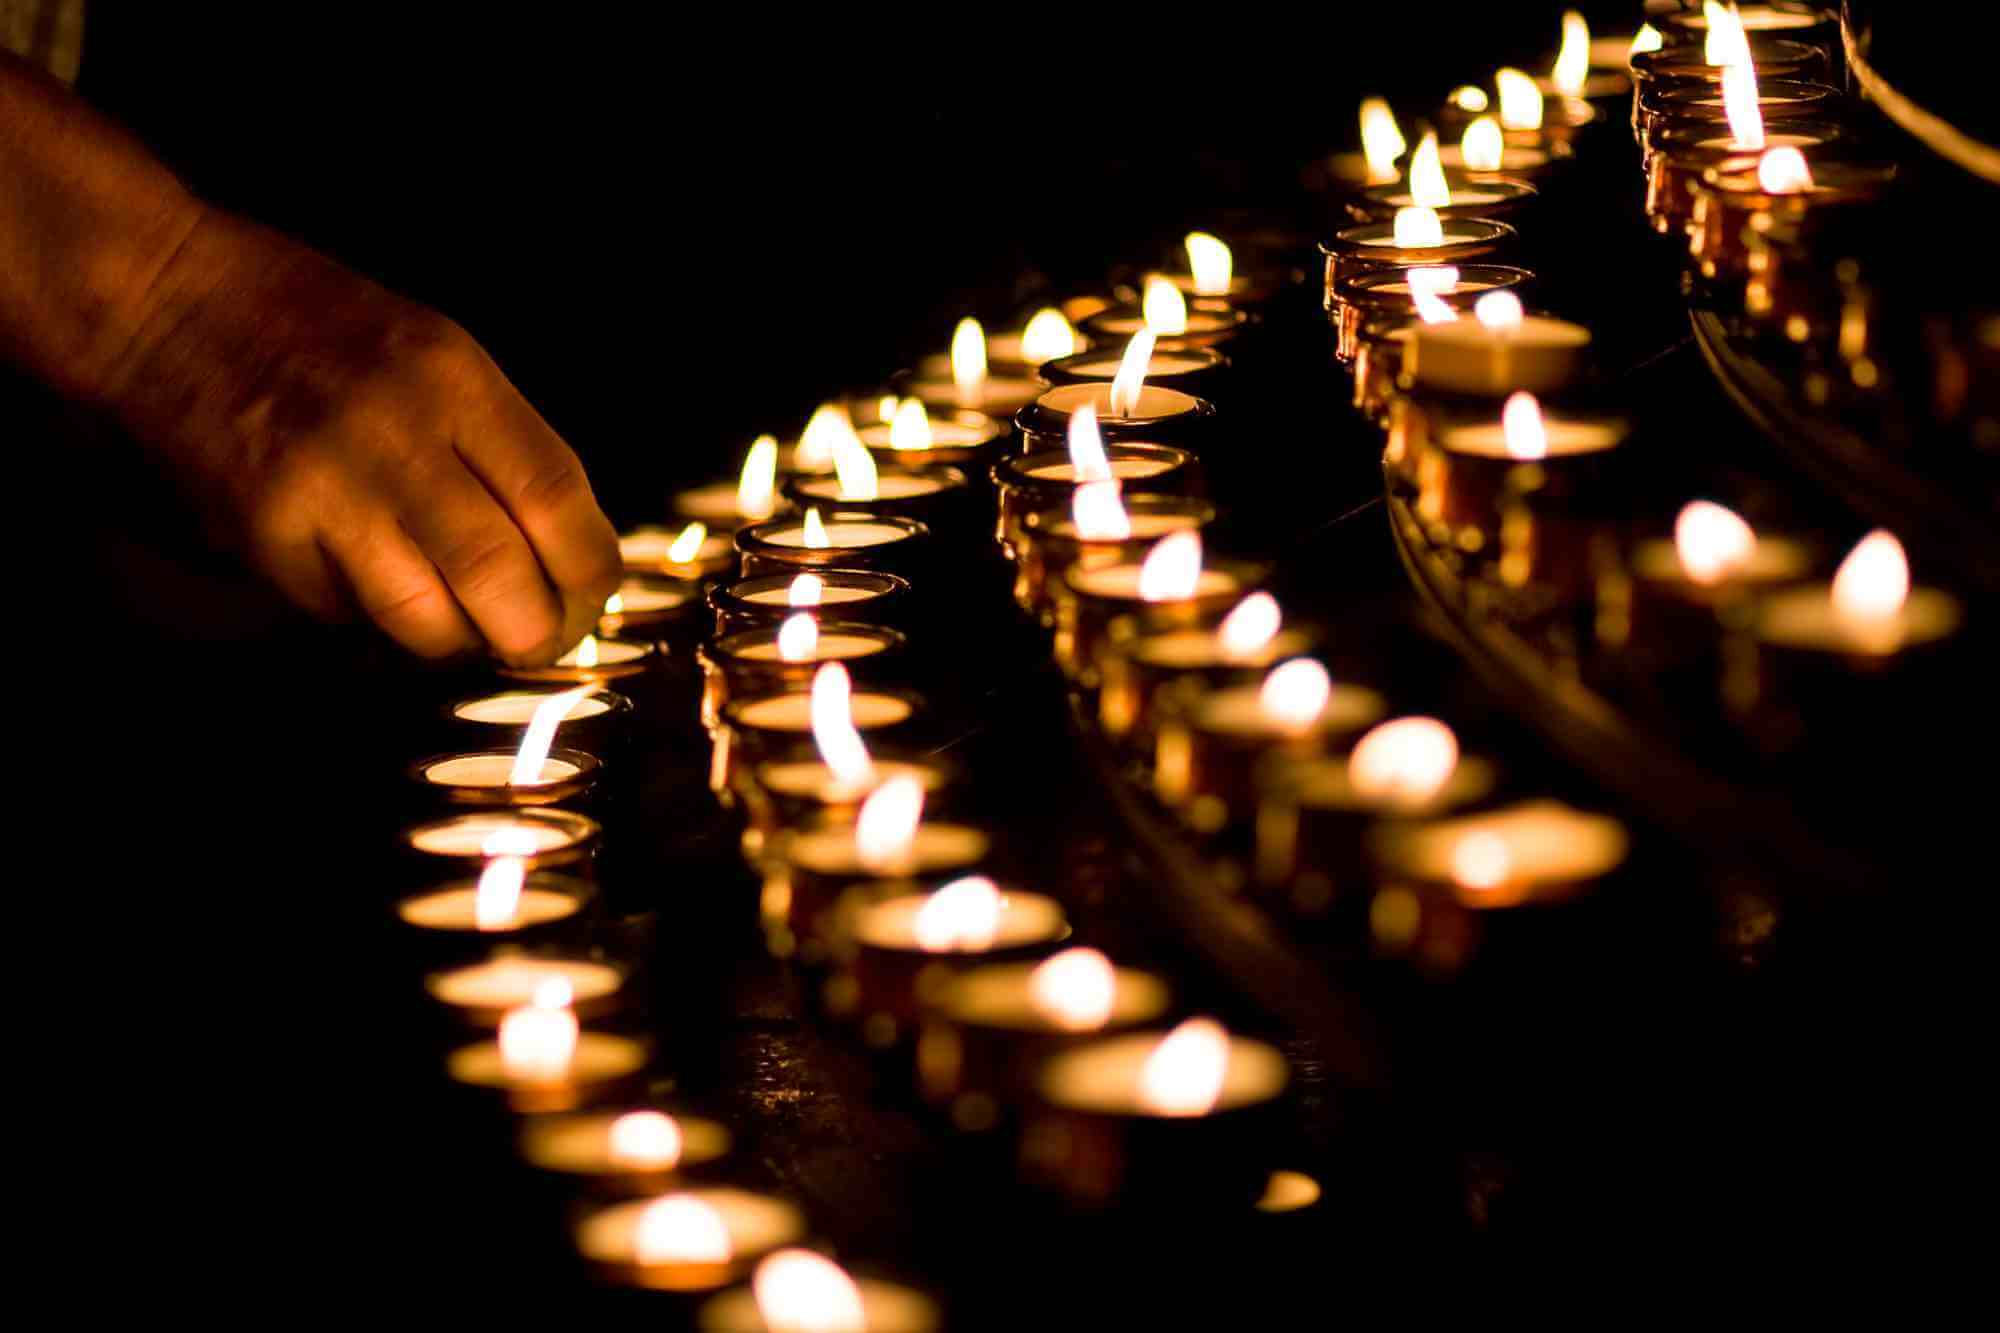 Christian lighting candles in a church to commemorate the death of a loved one